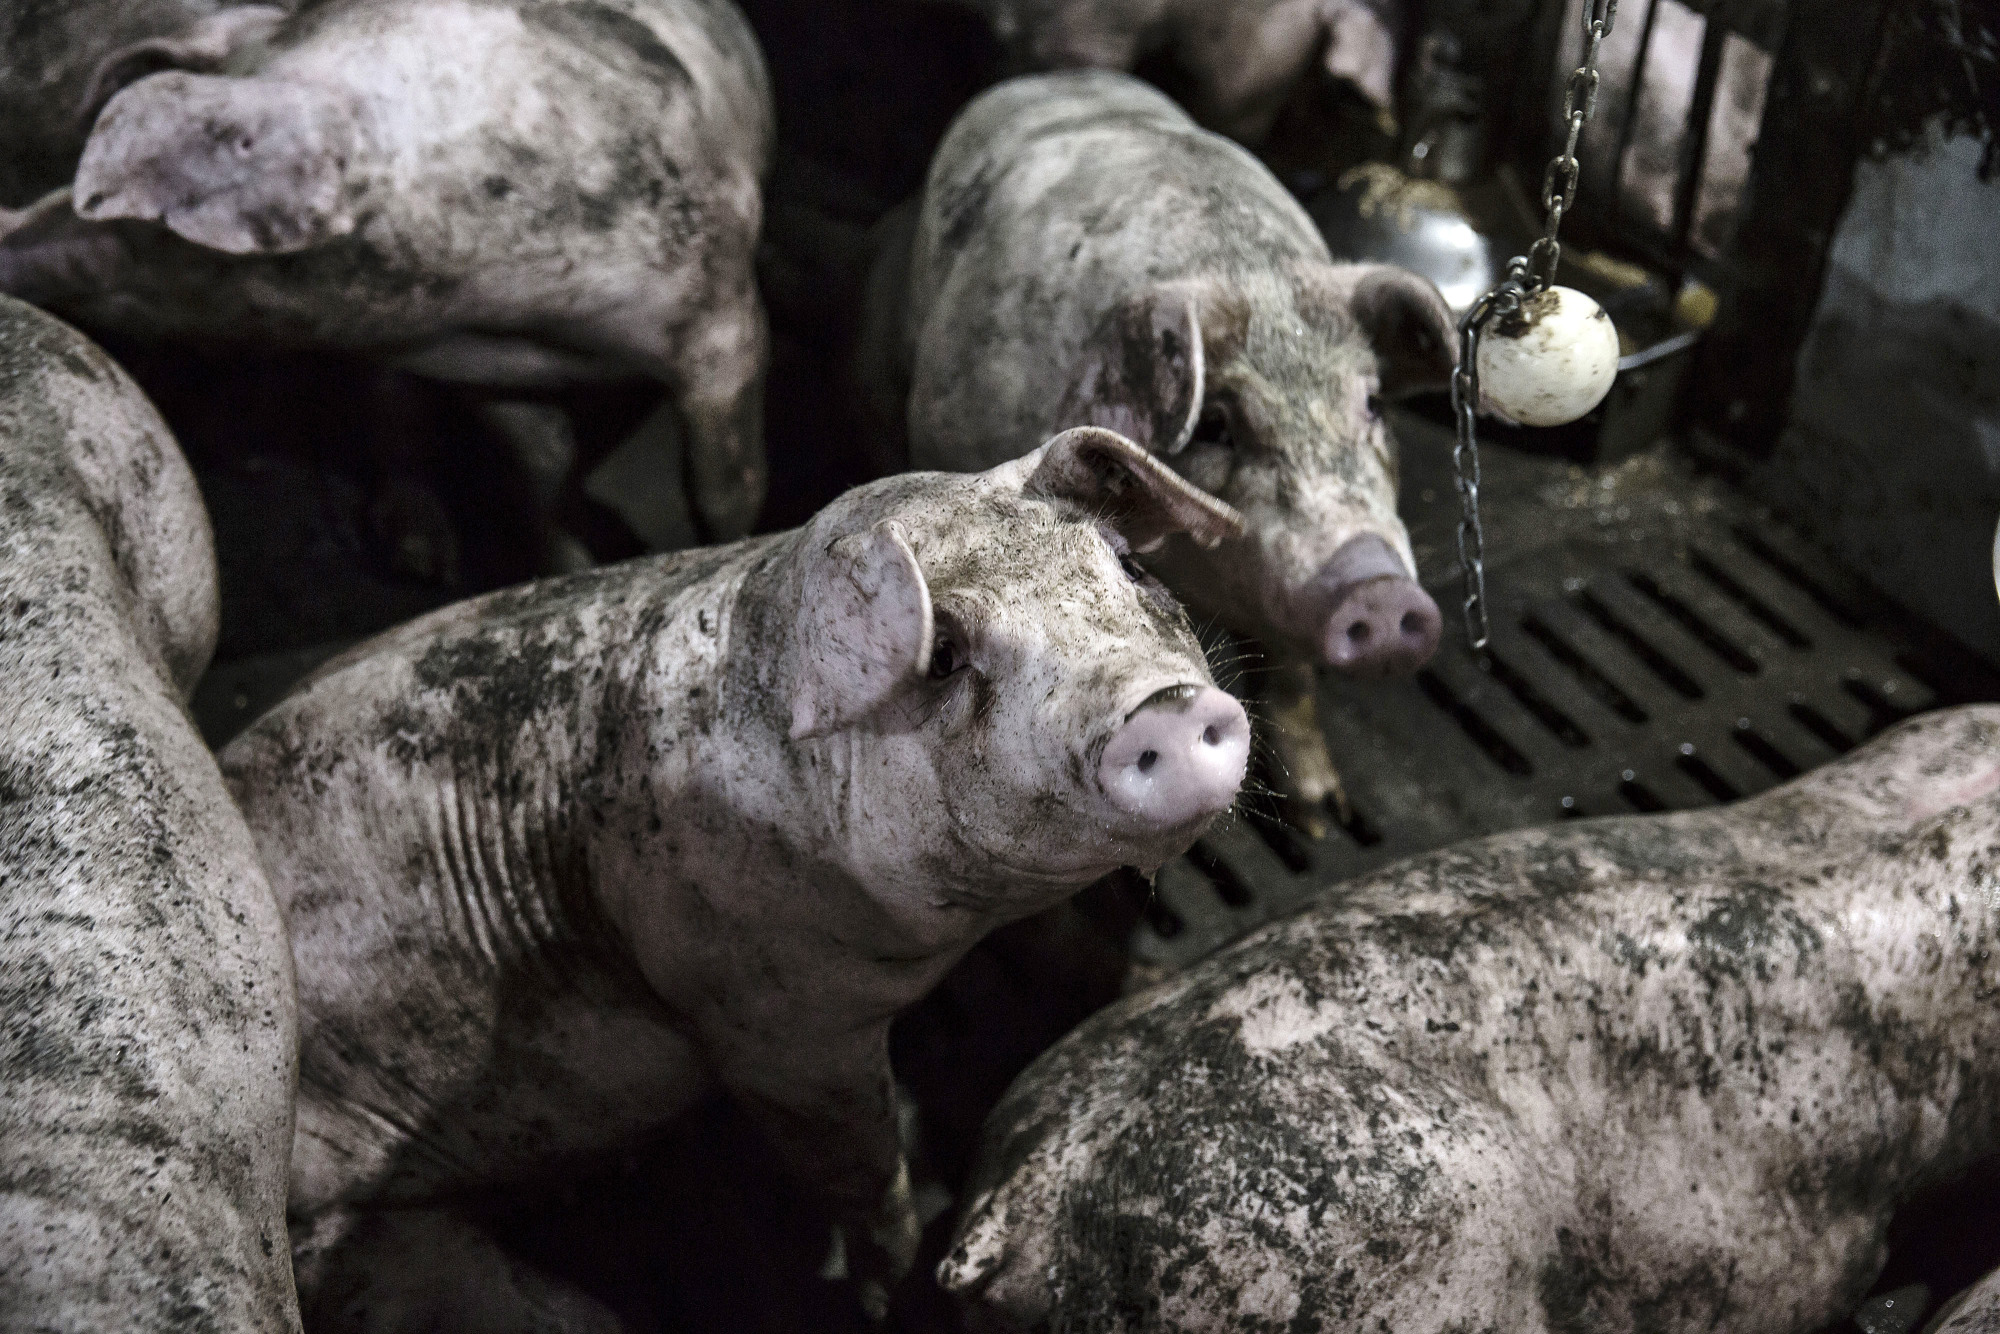 Vietnam May Declare State of Emergency for African Swine